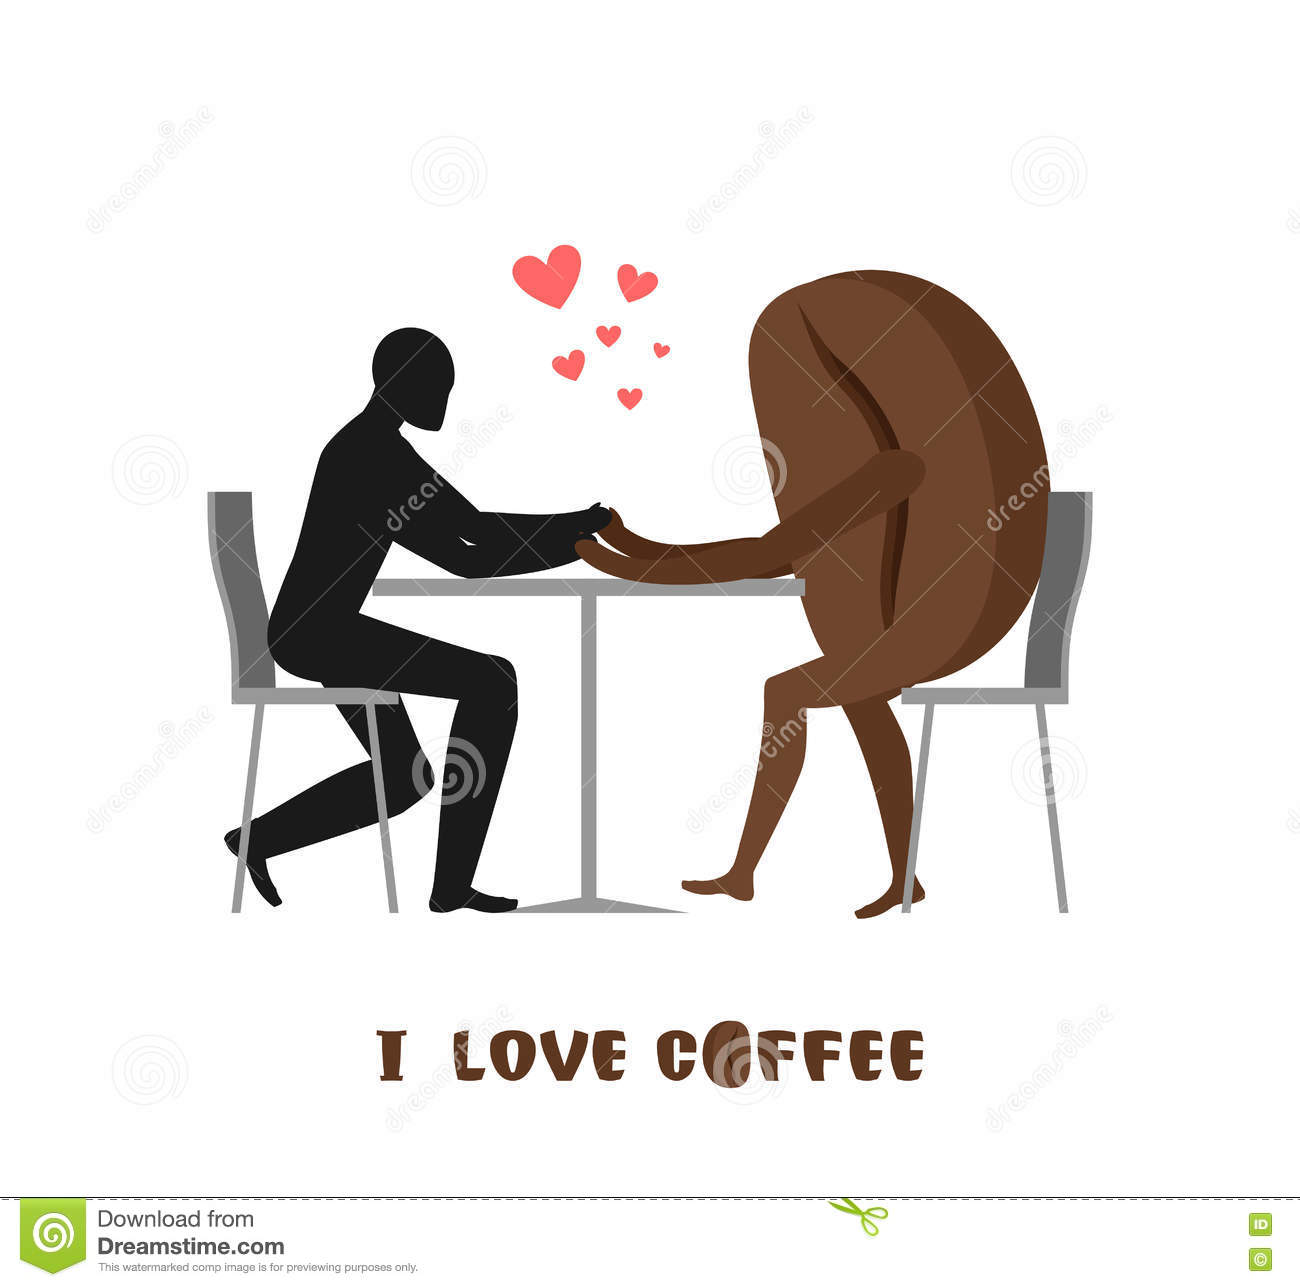 coffee-lovers-lover-cafe-man-coffee-beans-sitting-ta-table-food-restaurant-romantic-date-public-place-romantic-75593242.jpg